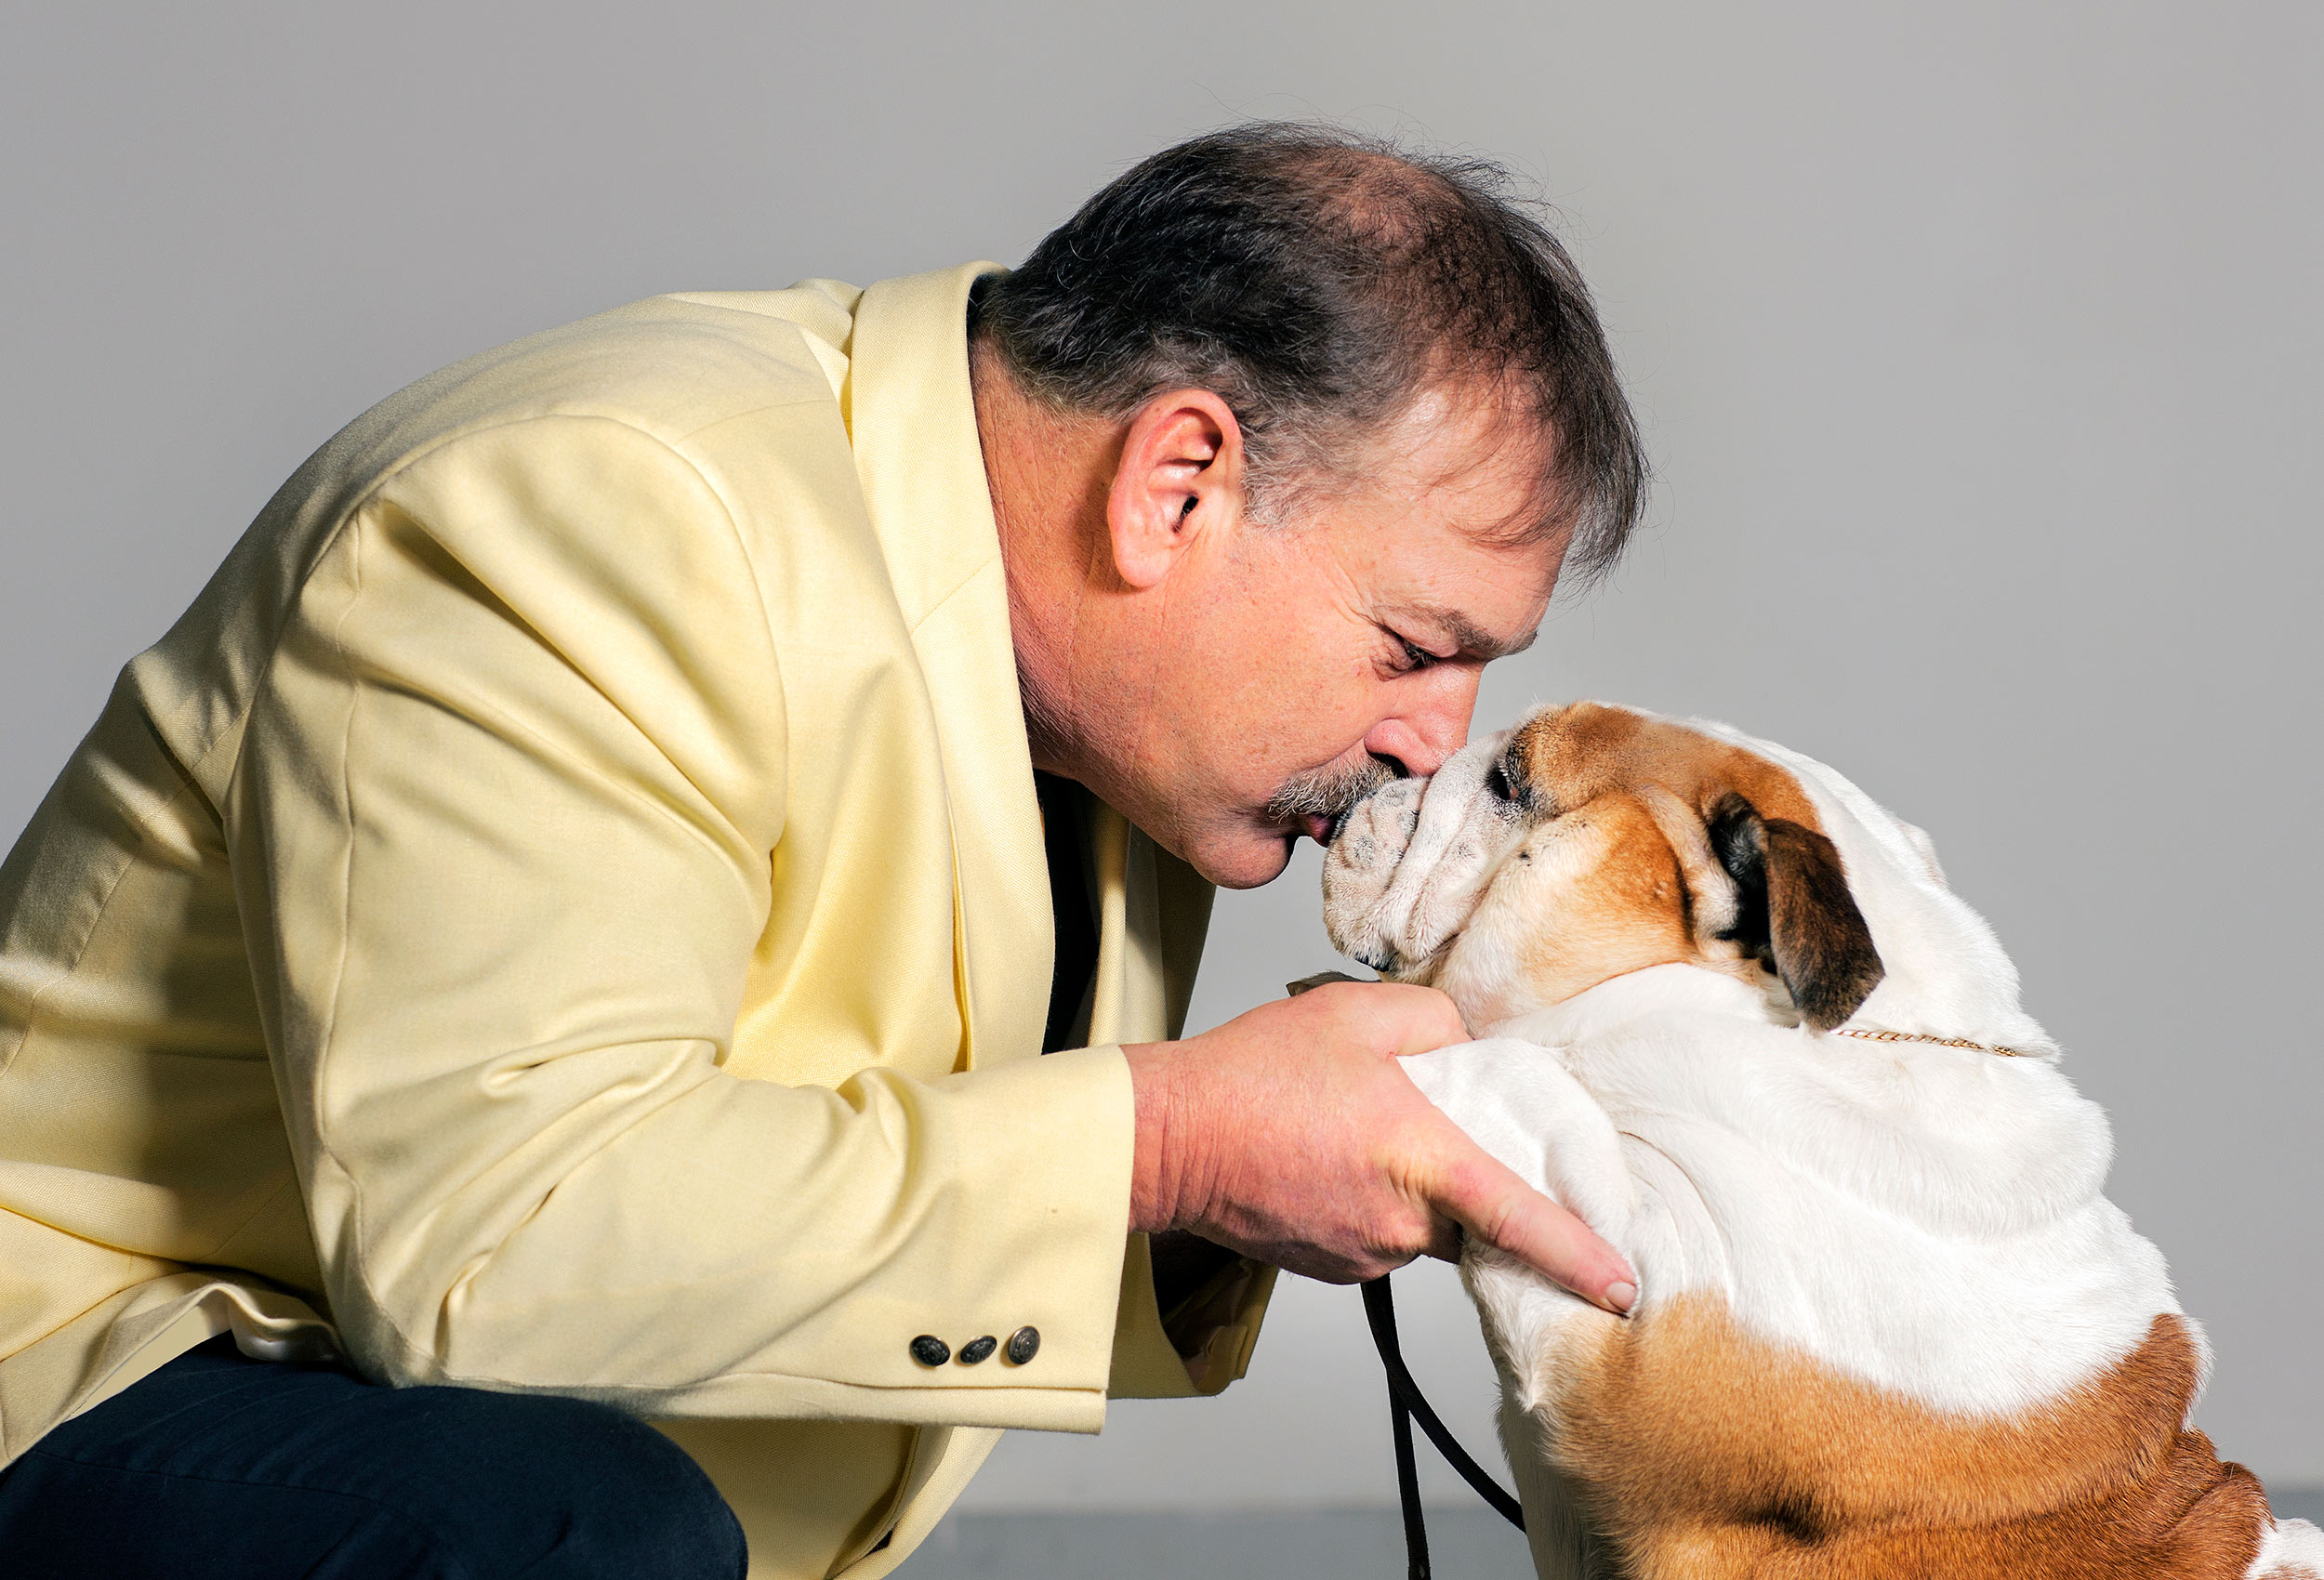 a-man-at-a-dog-show-kisses-his-pet-bulldog-after-he-pulls-off-a-winning-performance